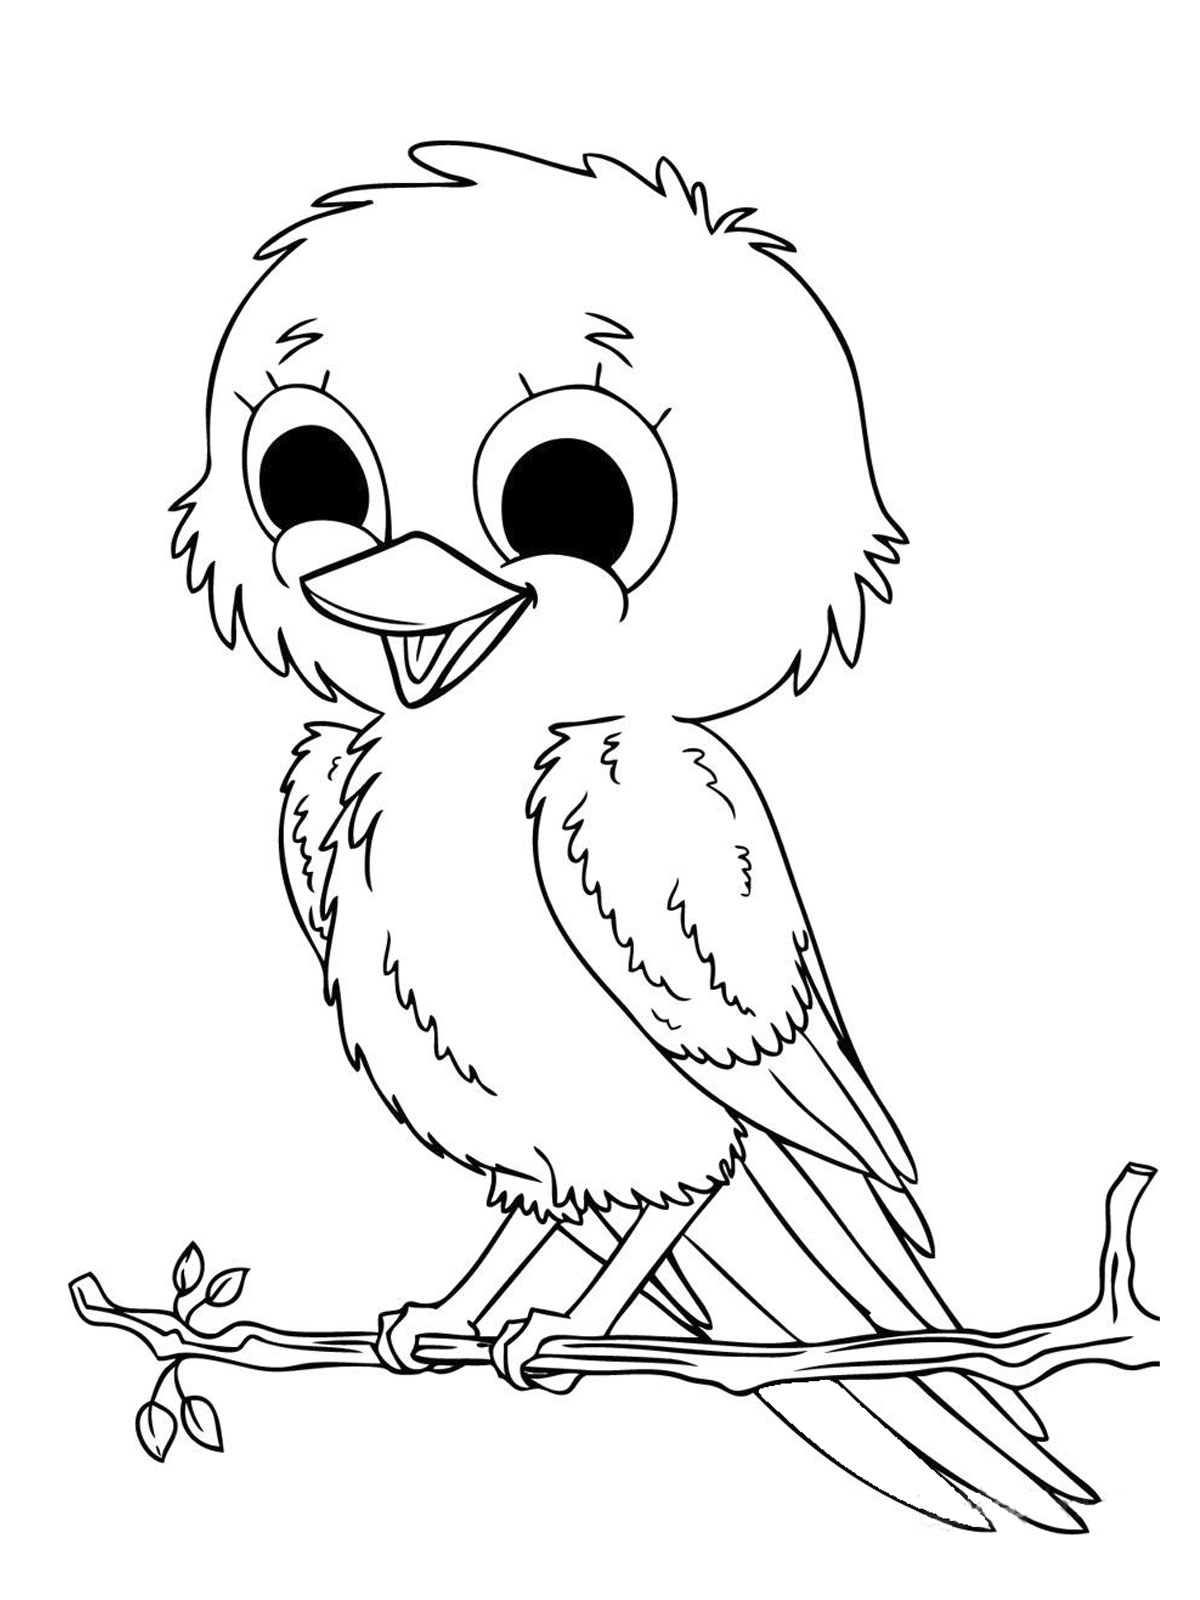 Coloring Pages For Girls Online At Getdrawings Com Free For